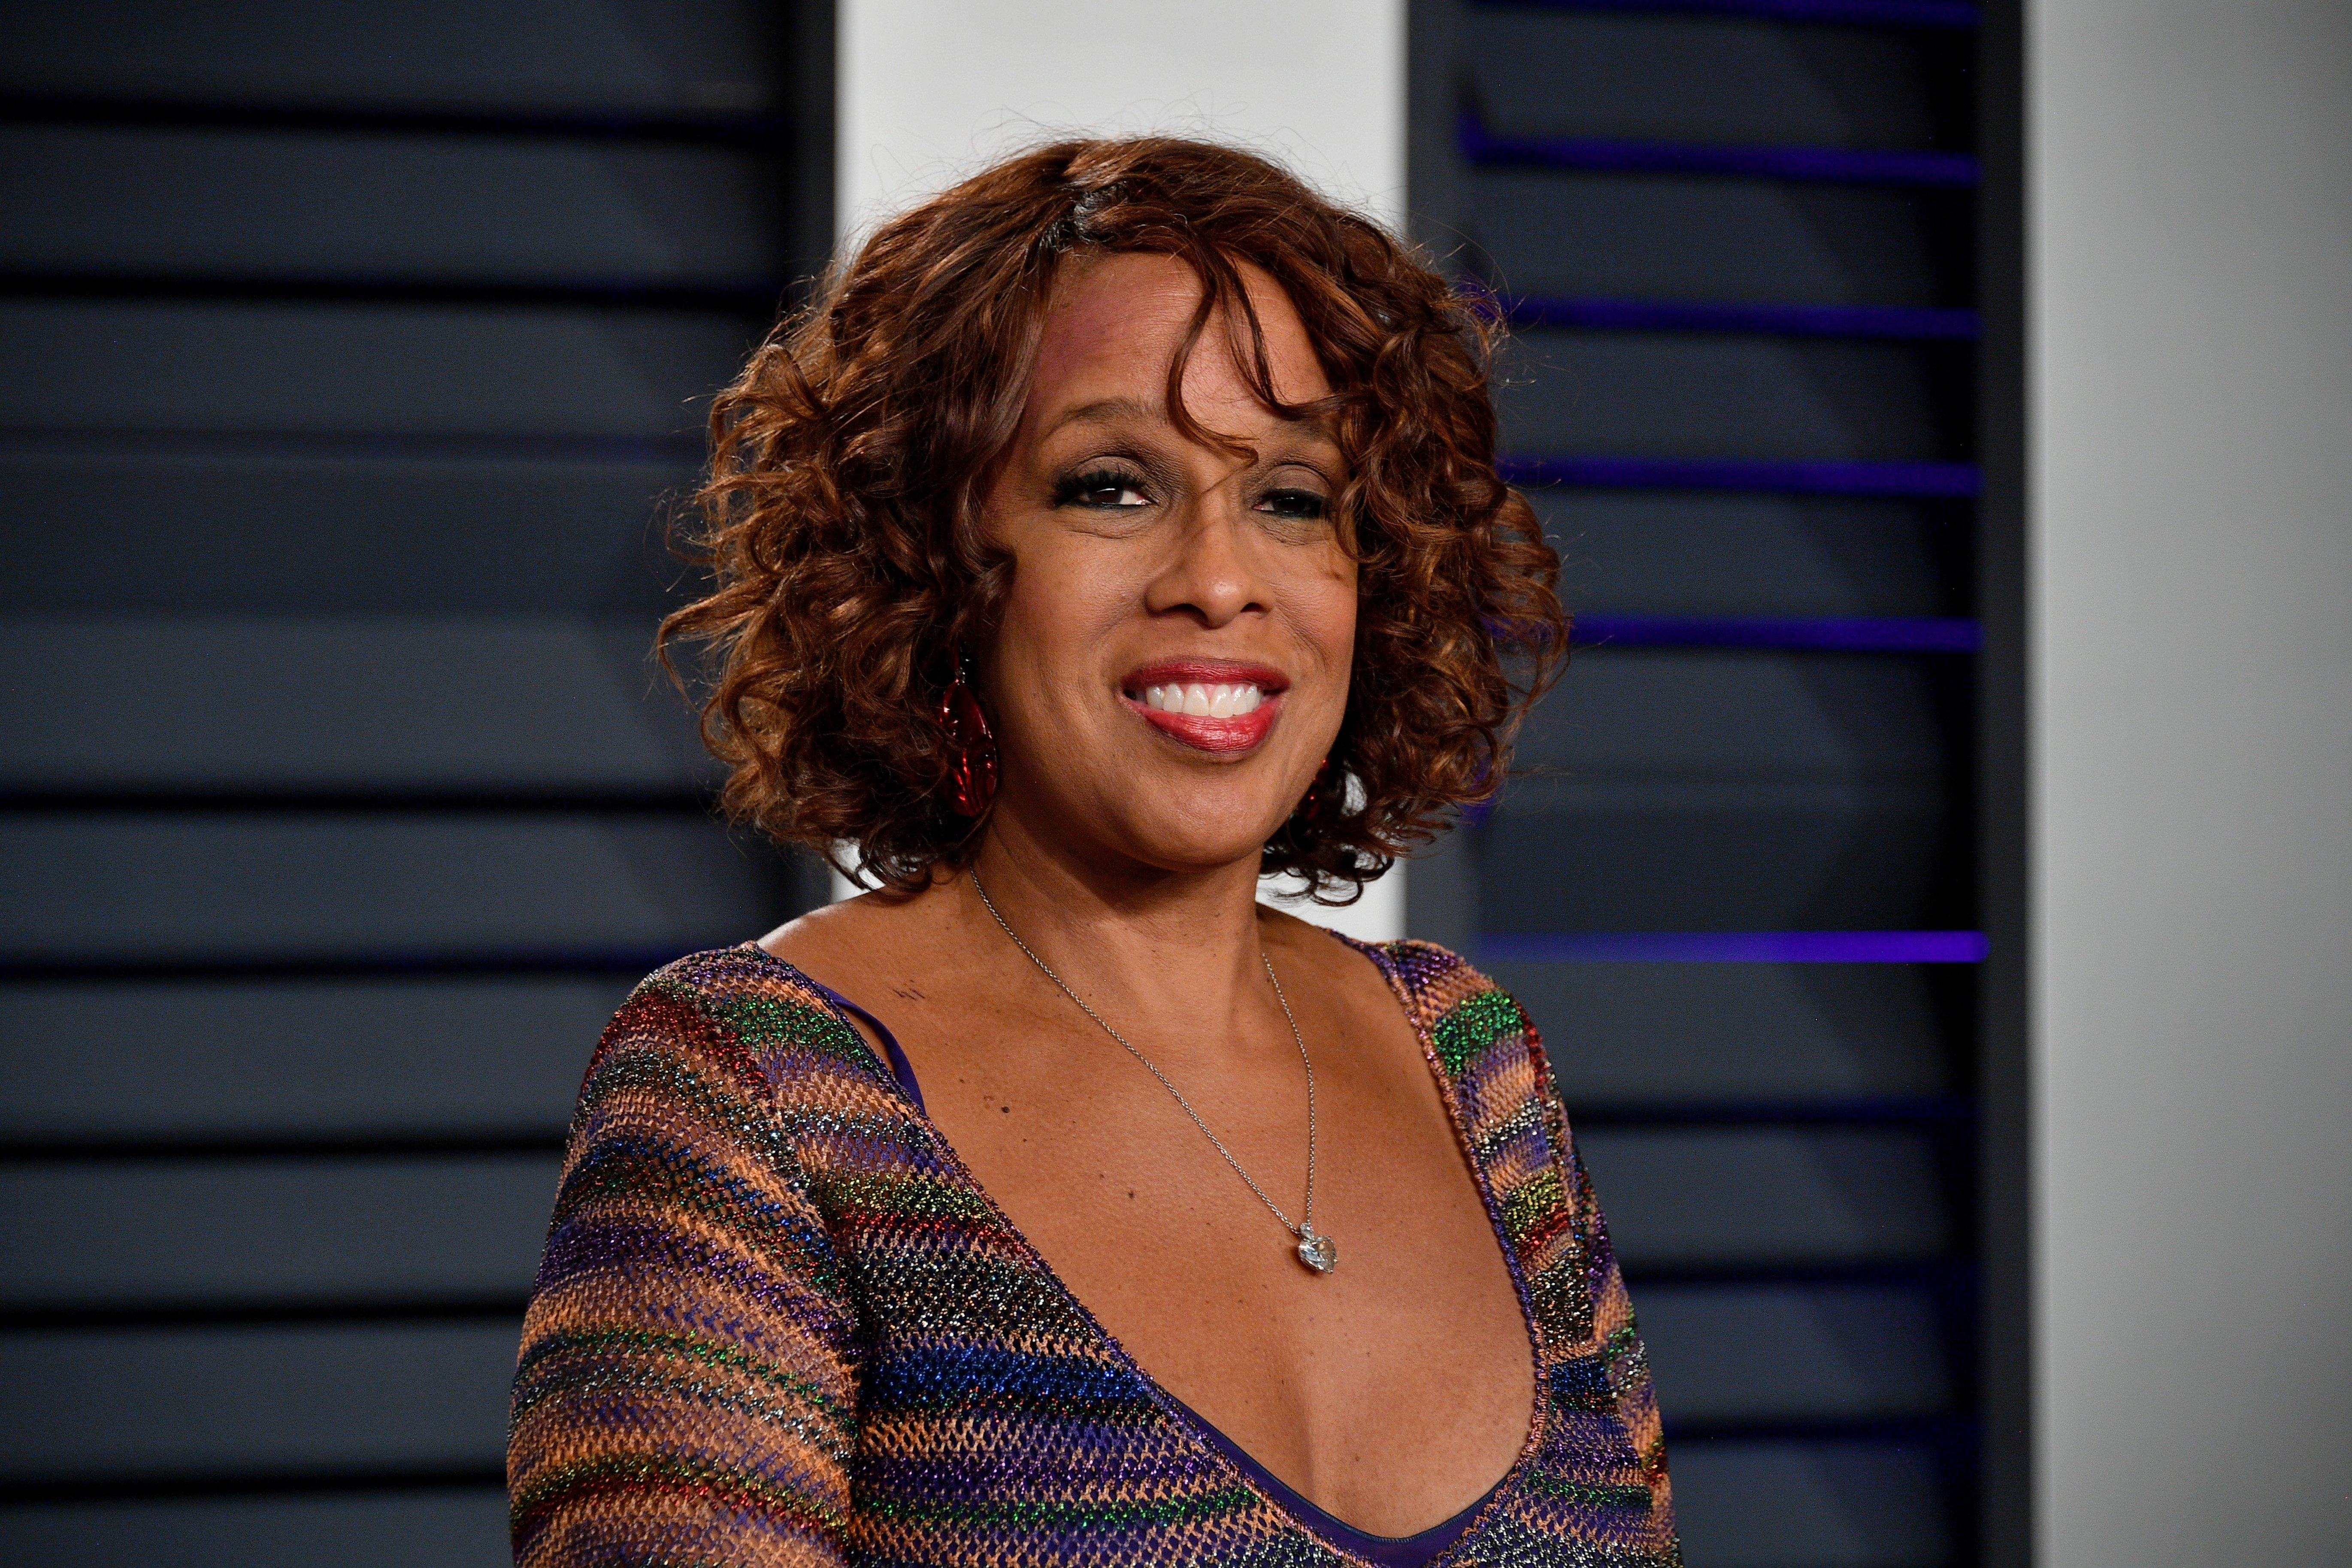 Gayle King at the 2019 Vanity Fair Oscar Party.   Photo: Getty Images/GlobalImagesUkraine